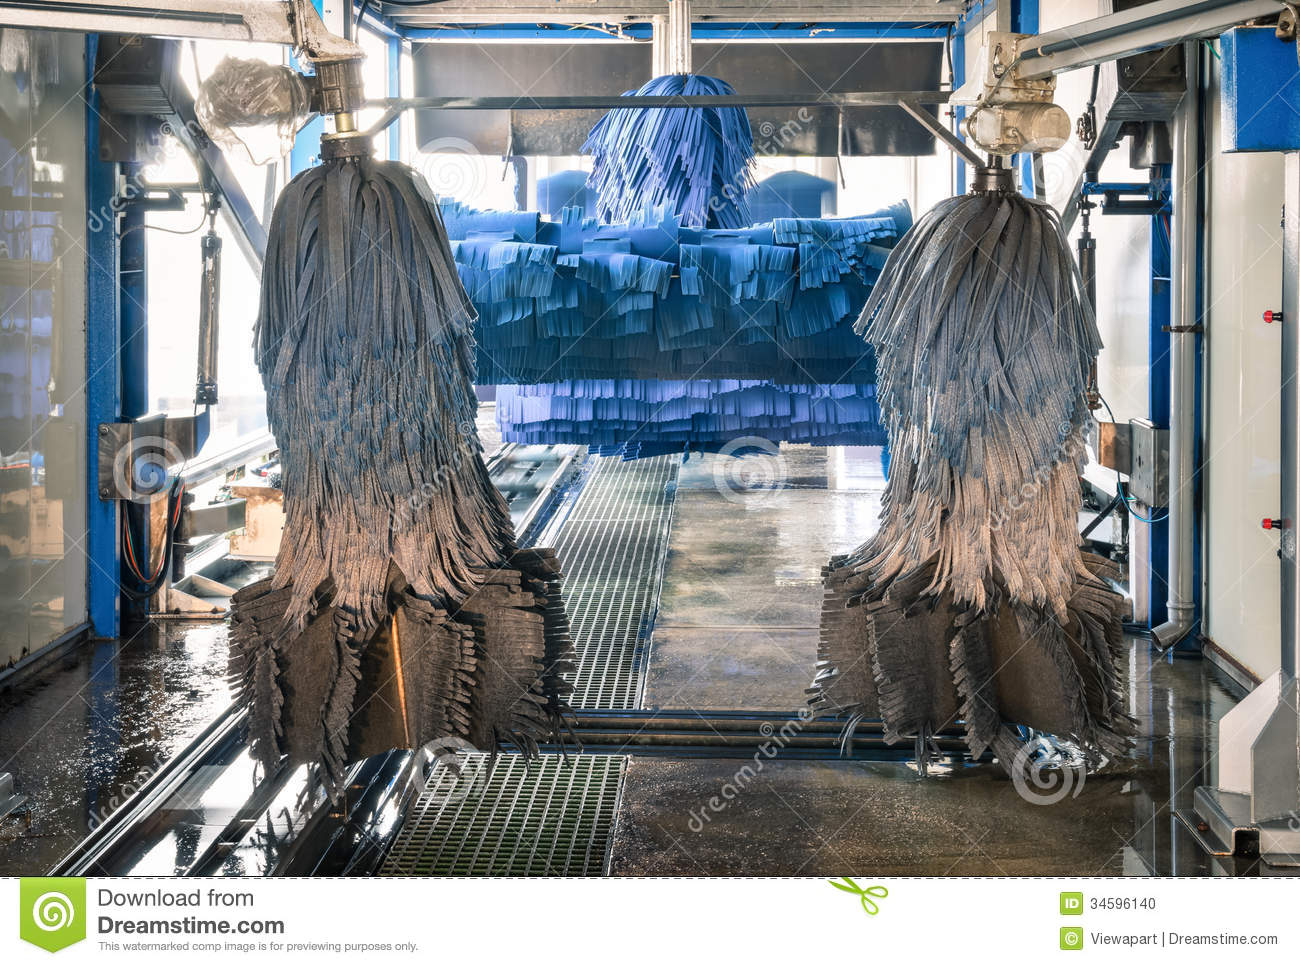 Modern Automatic Carwash With Blue Brushes Stock Photo